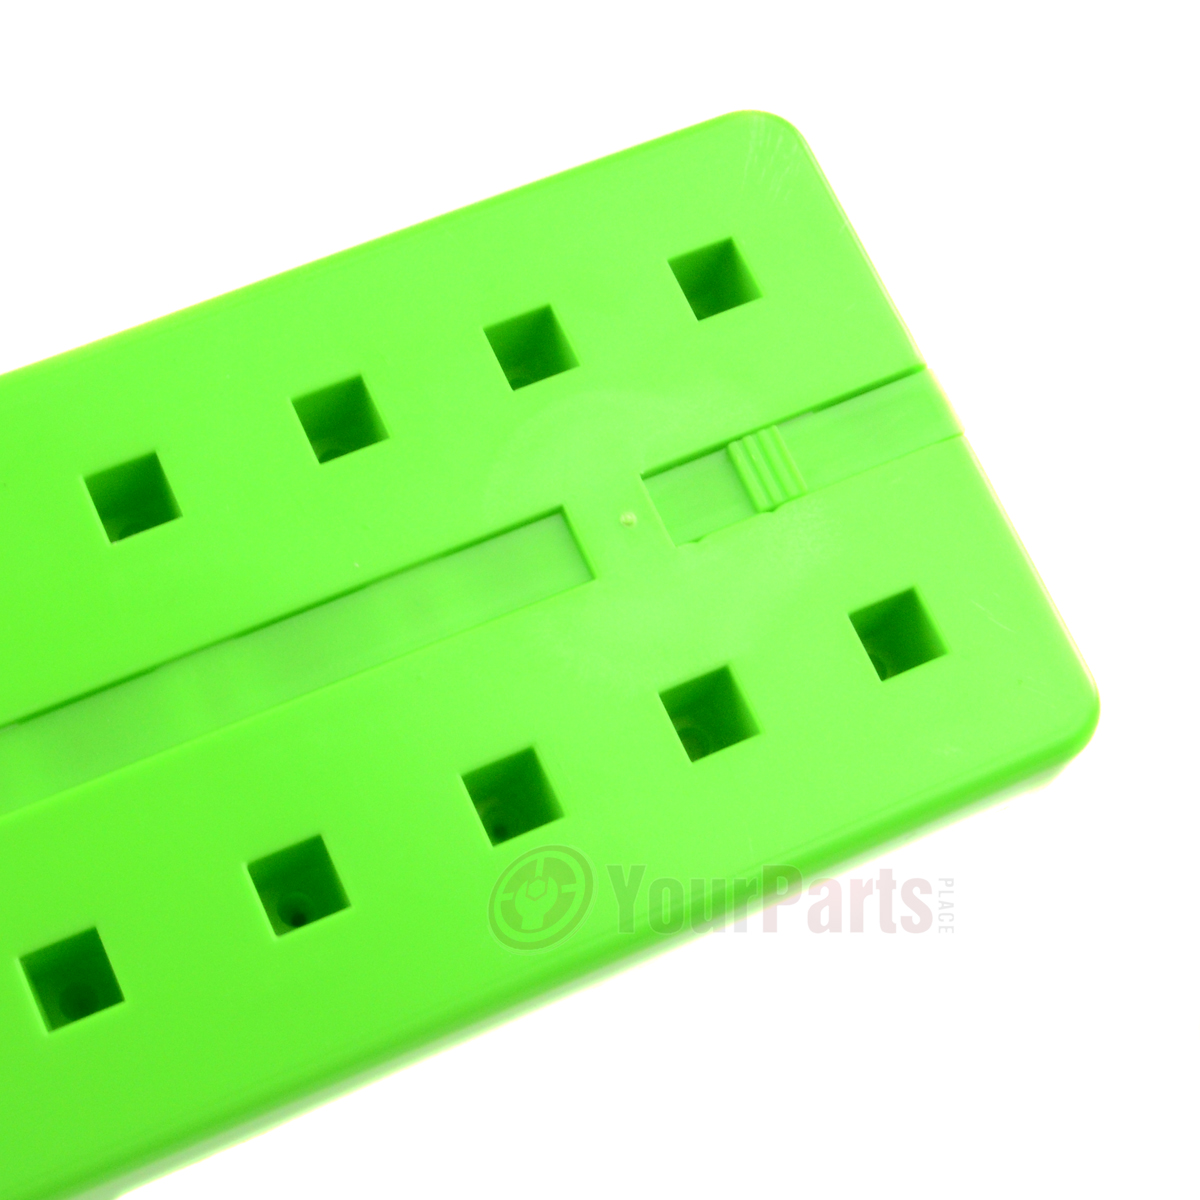 "6 GRIP 1//2/"" 1//4/"" 3//8/"" Socket Tray Holder Metric SAE Organizer Universal Green"